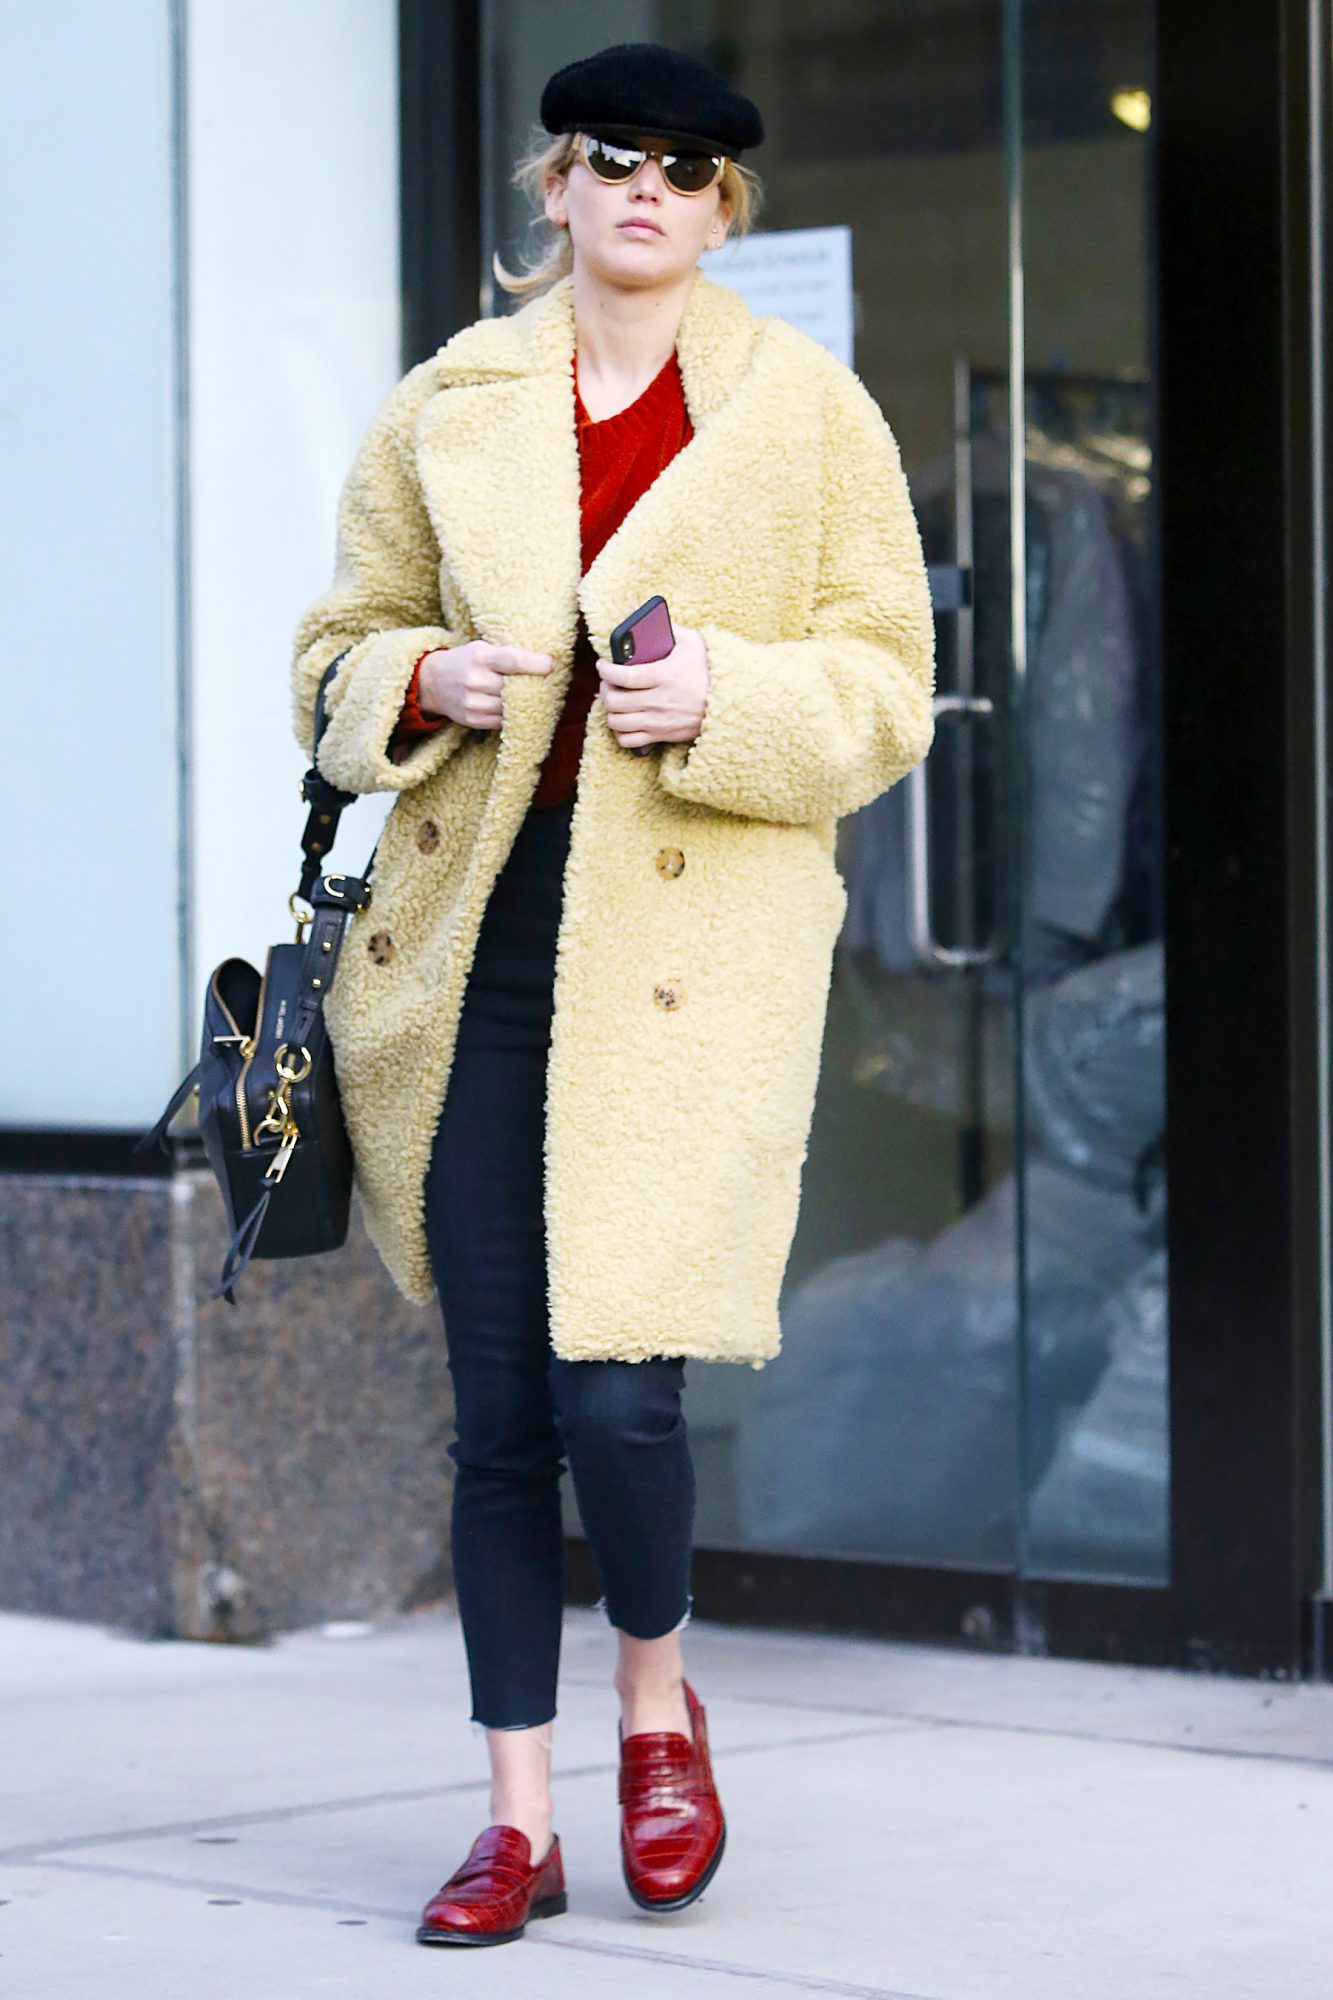 EXCLUSIVE: Jennifer Lawrence is Spotted Heading to a Salon for a Pamper Session in New York City.